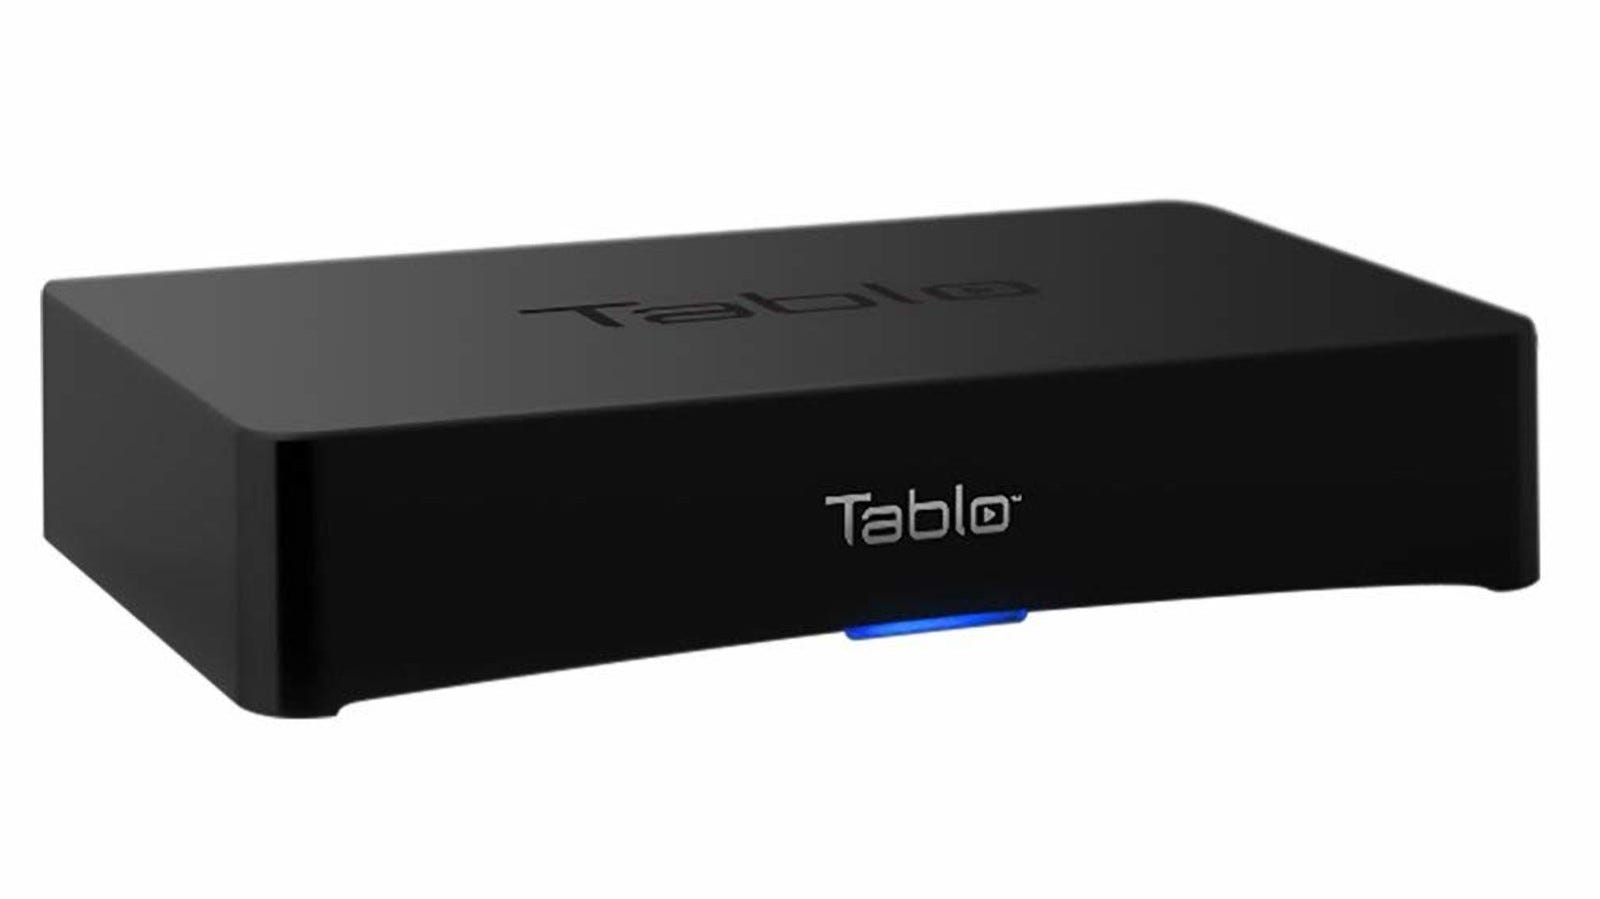 Tablo 4-Tuner DVR